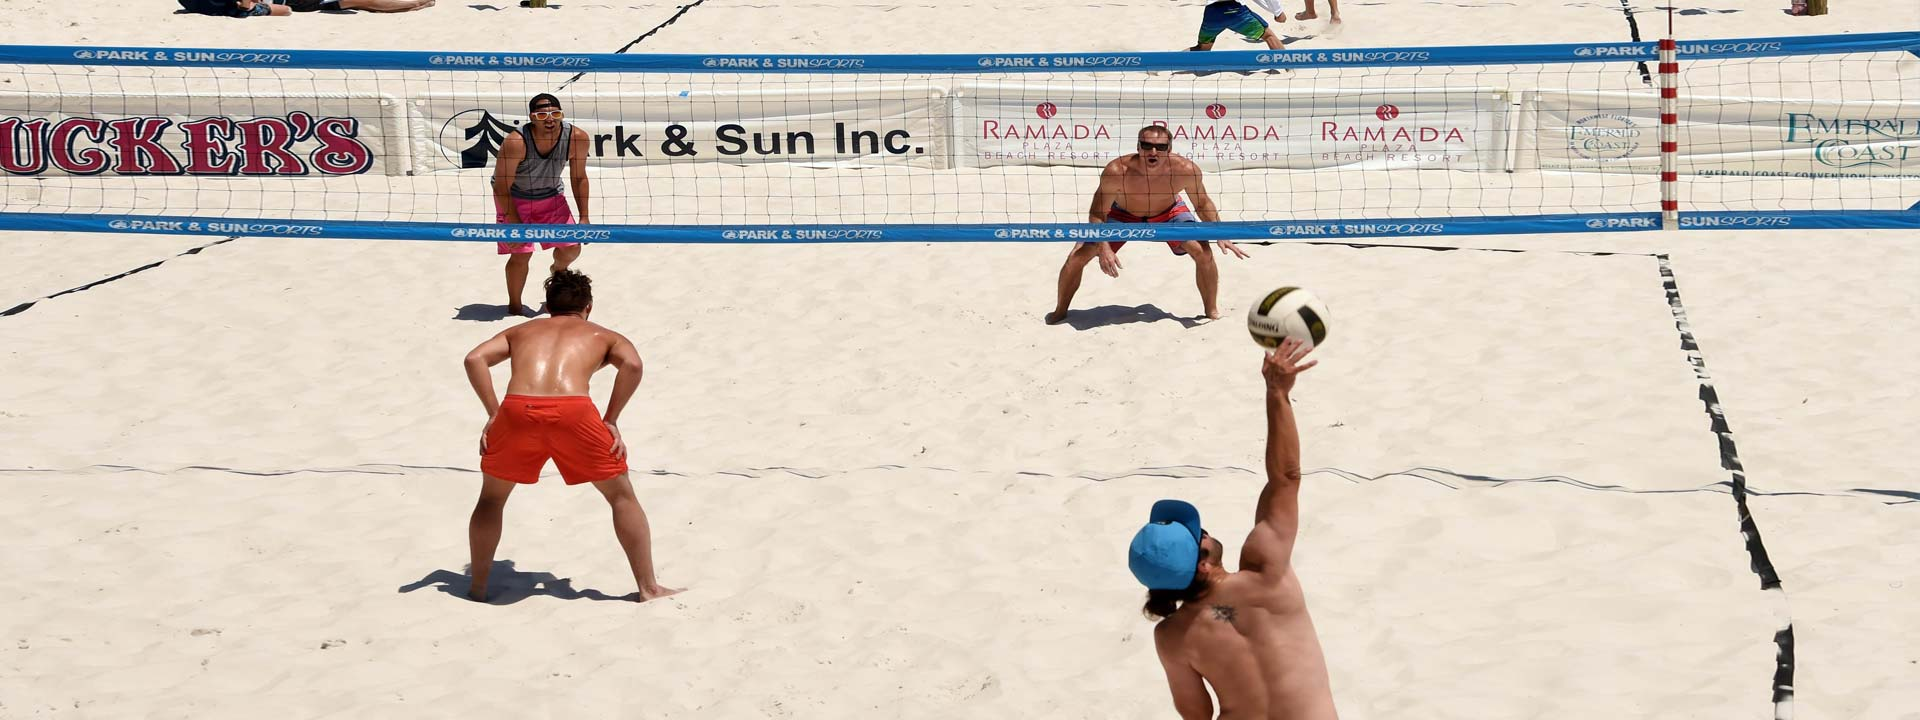 Emerald Coast Volleyball Week 2019 Condo World Blog